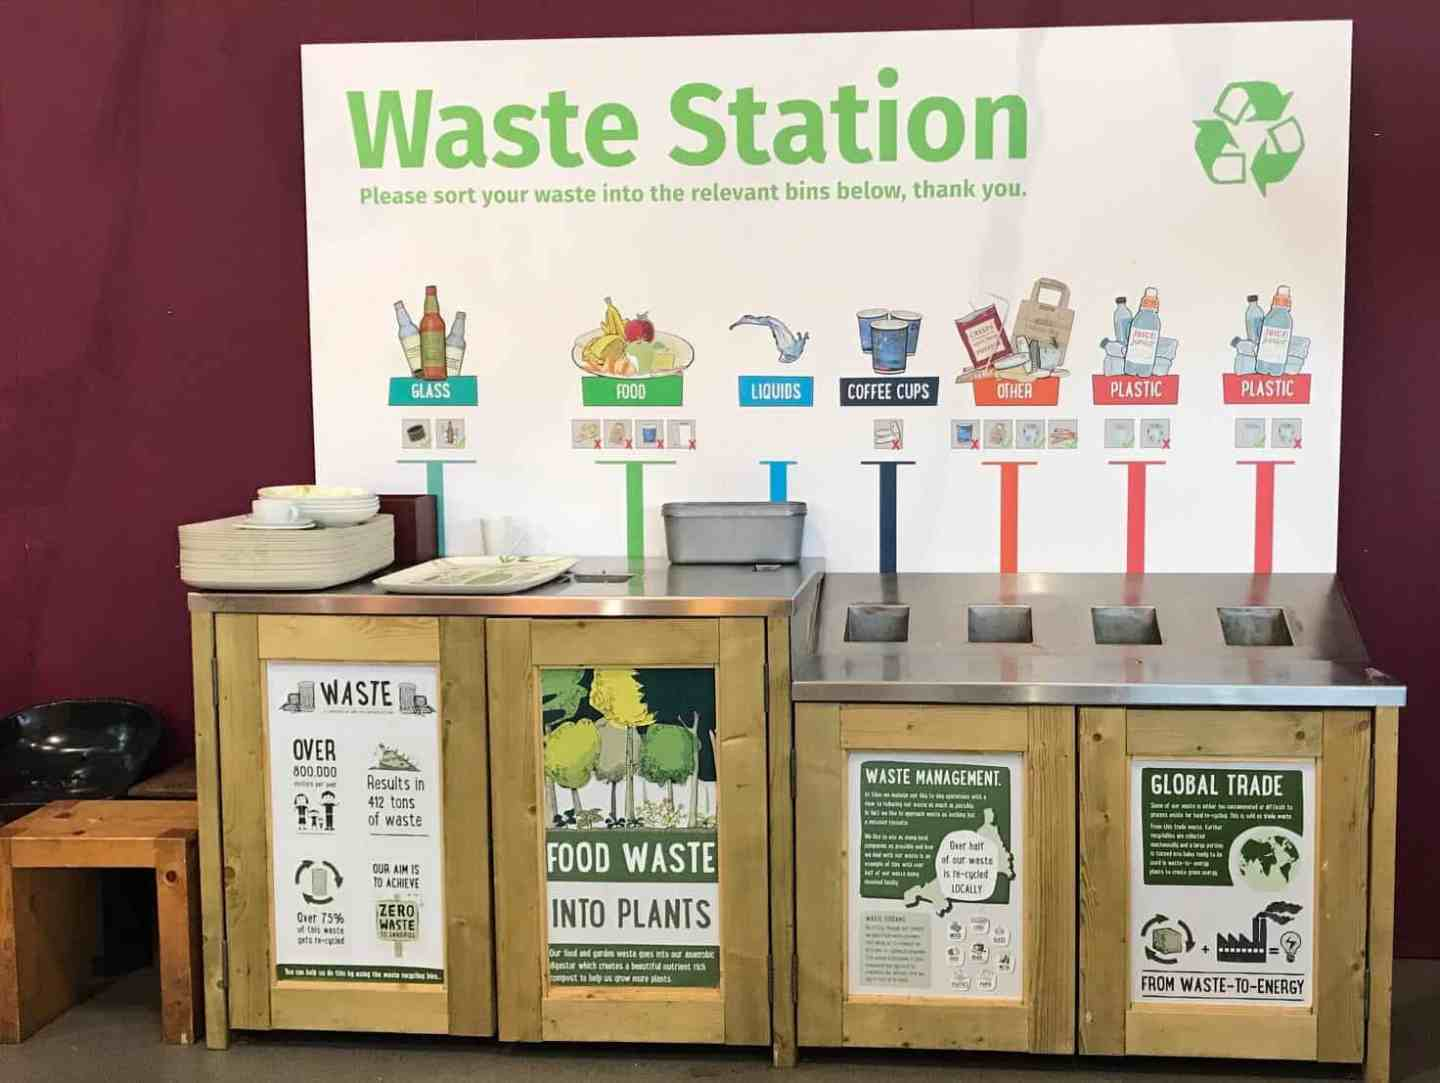 Waste Station to encourage recycling